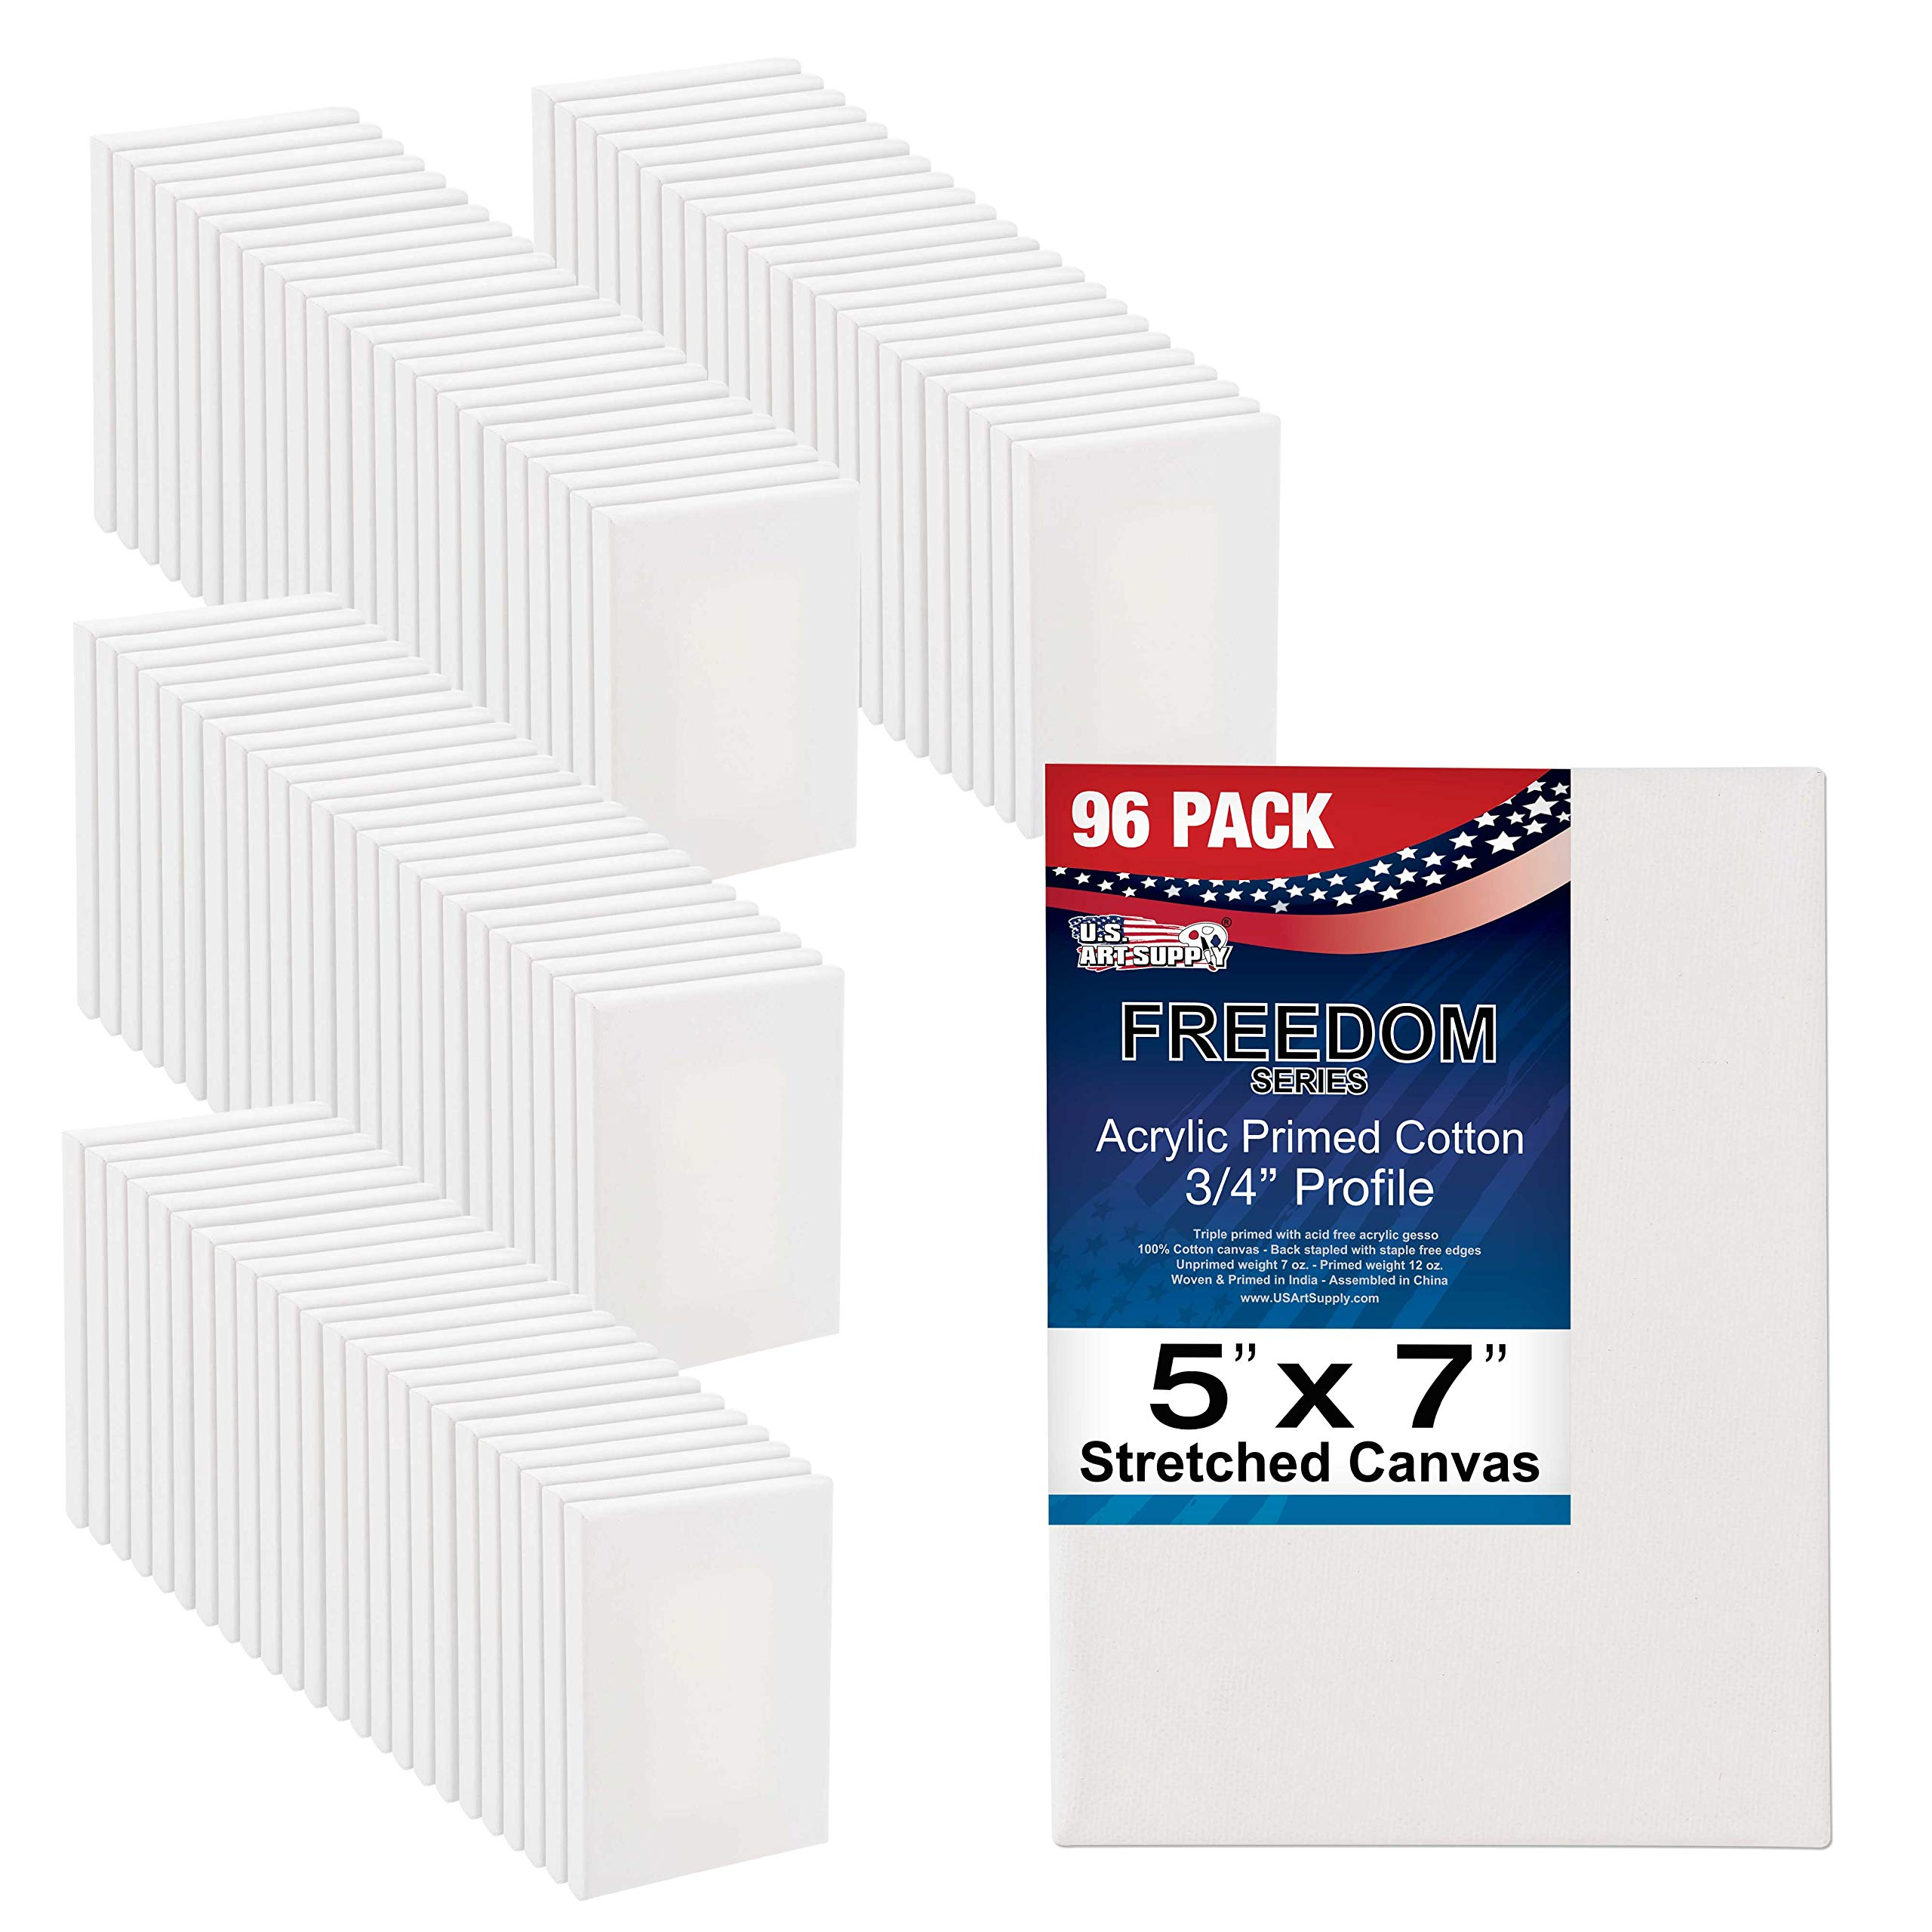 U.S. Art Supply 5 x 7 inch Stretched Canvas 12-Ounce Primed 96-Pack - Professional White Blank 3/4'' Profile Heavy-Weight Gesso Acid Free Bulk Pack - Painting, Acrylic Pouring, Oil Paint by US Art Supply